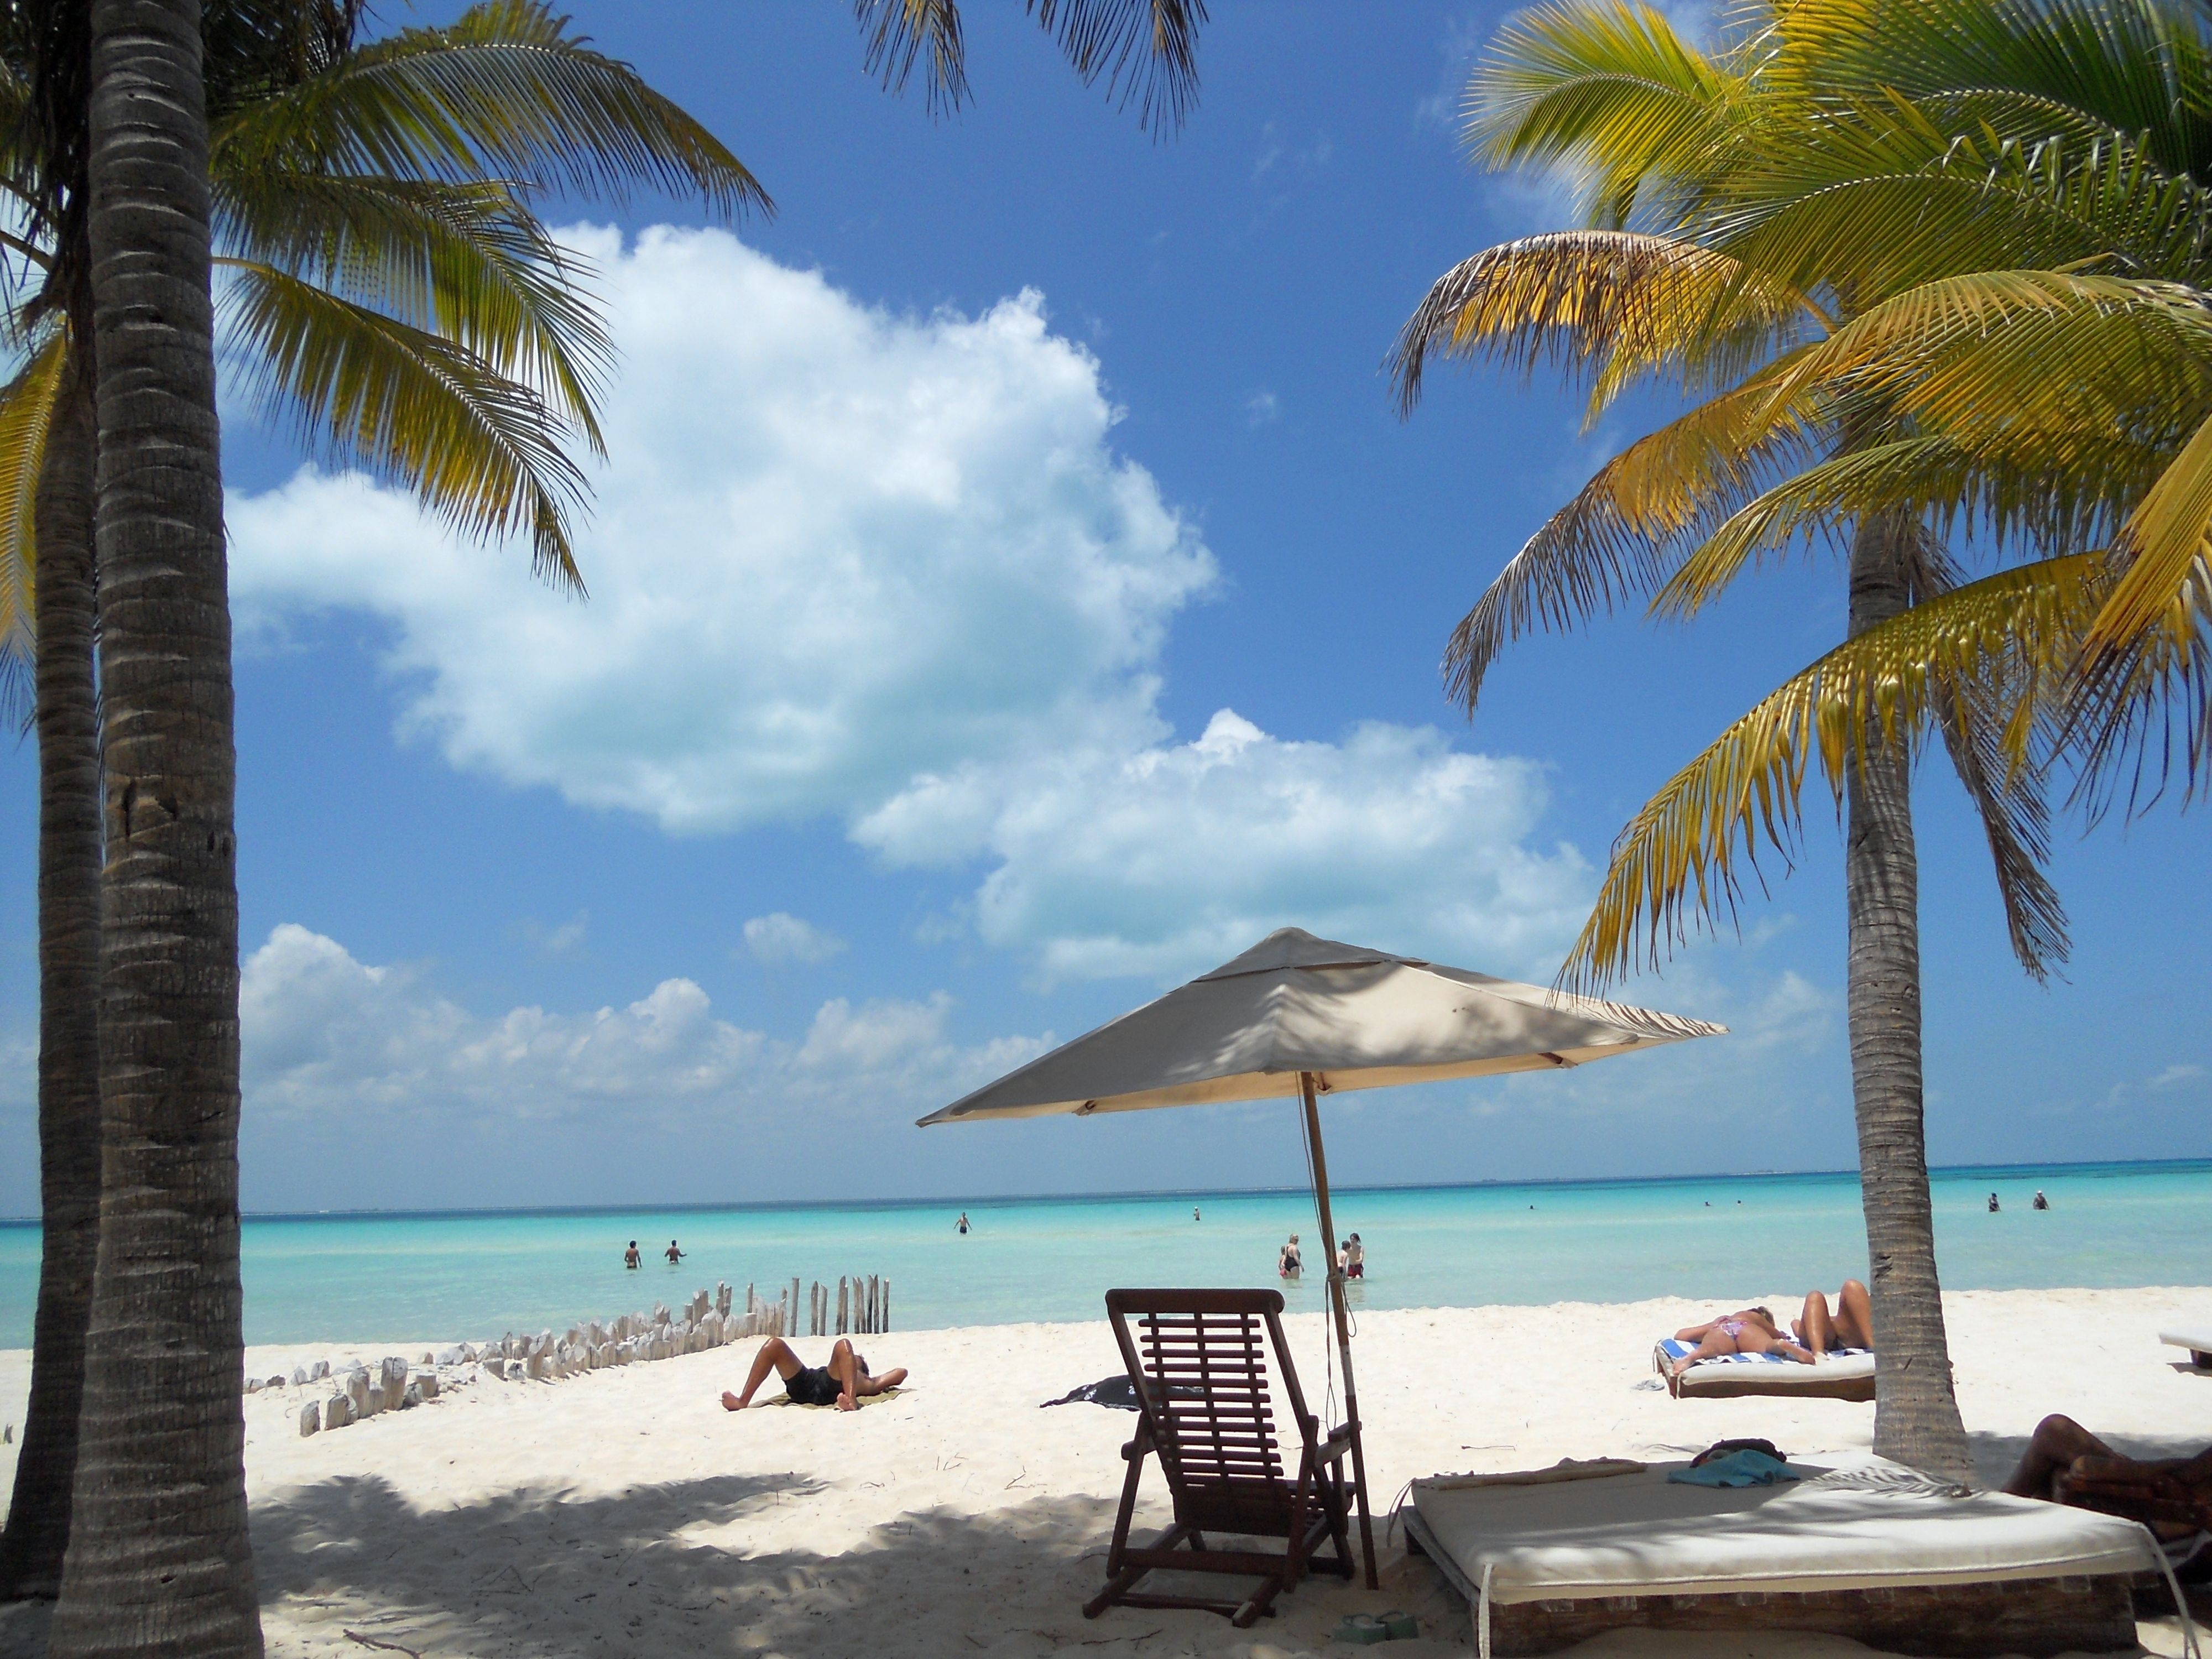 Parasol at the sea shore in Isla Mujeres with its white sand beach